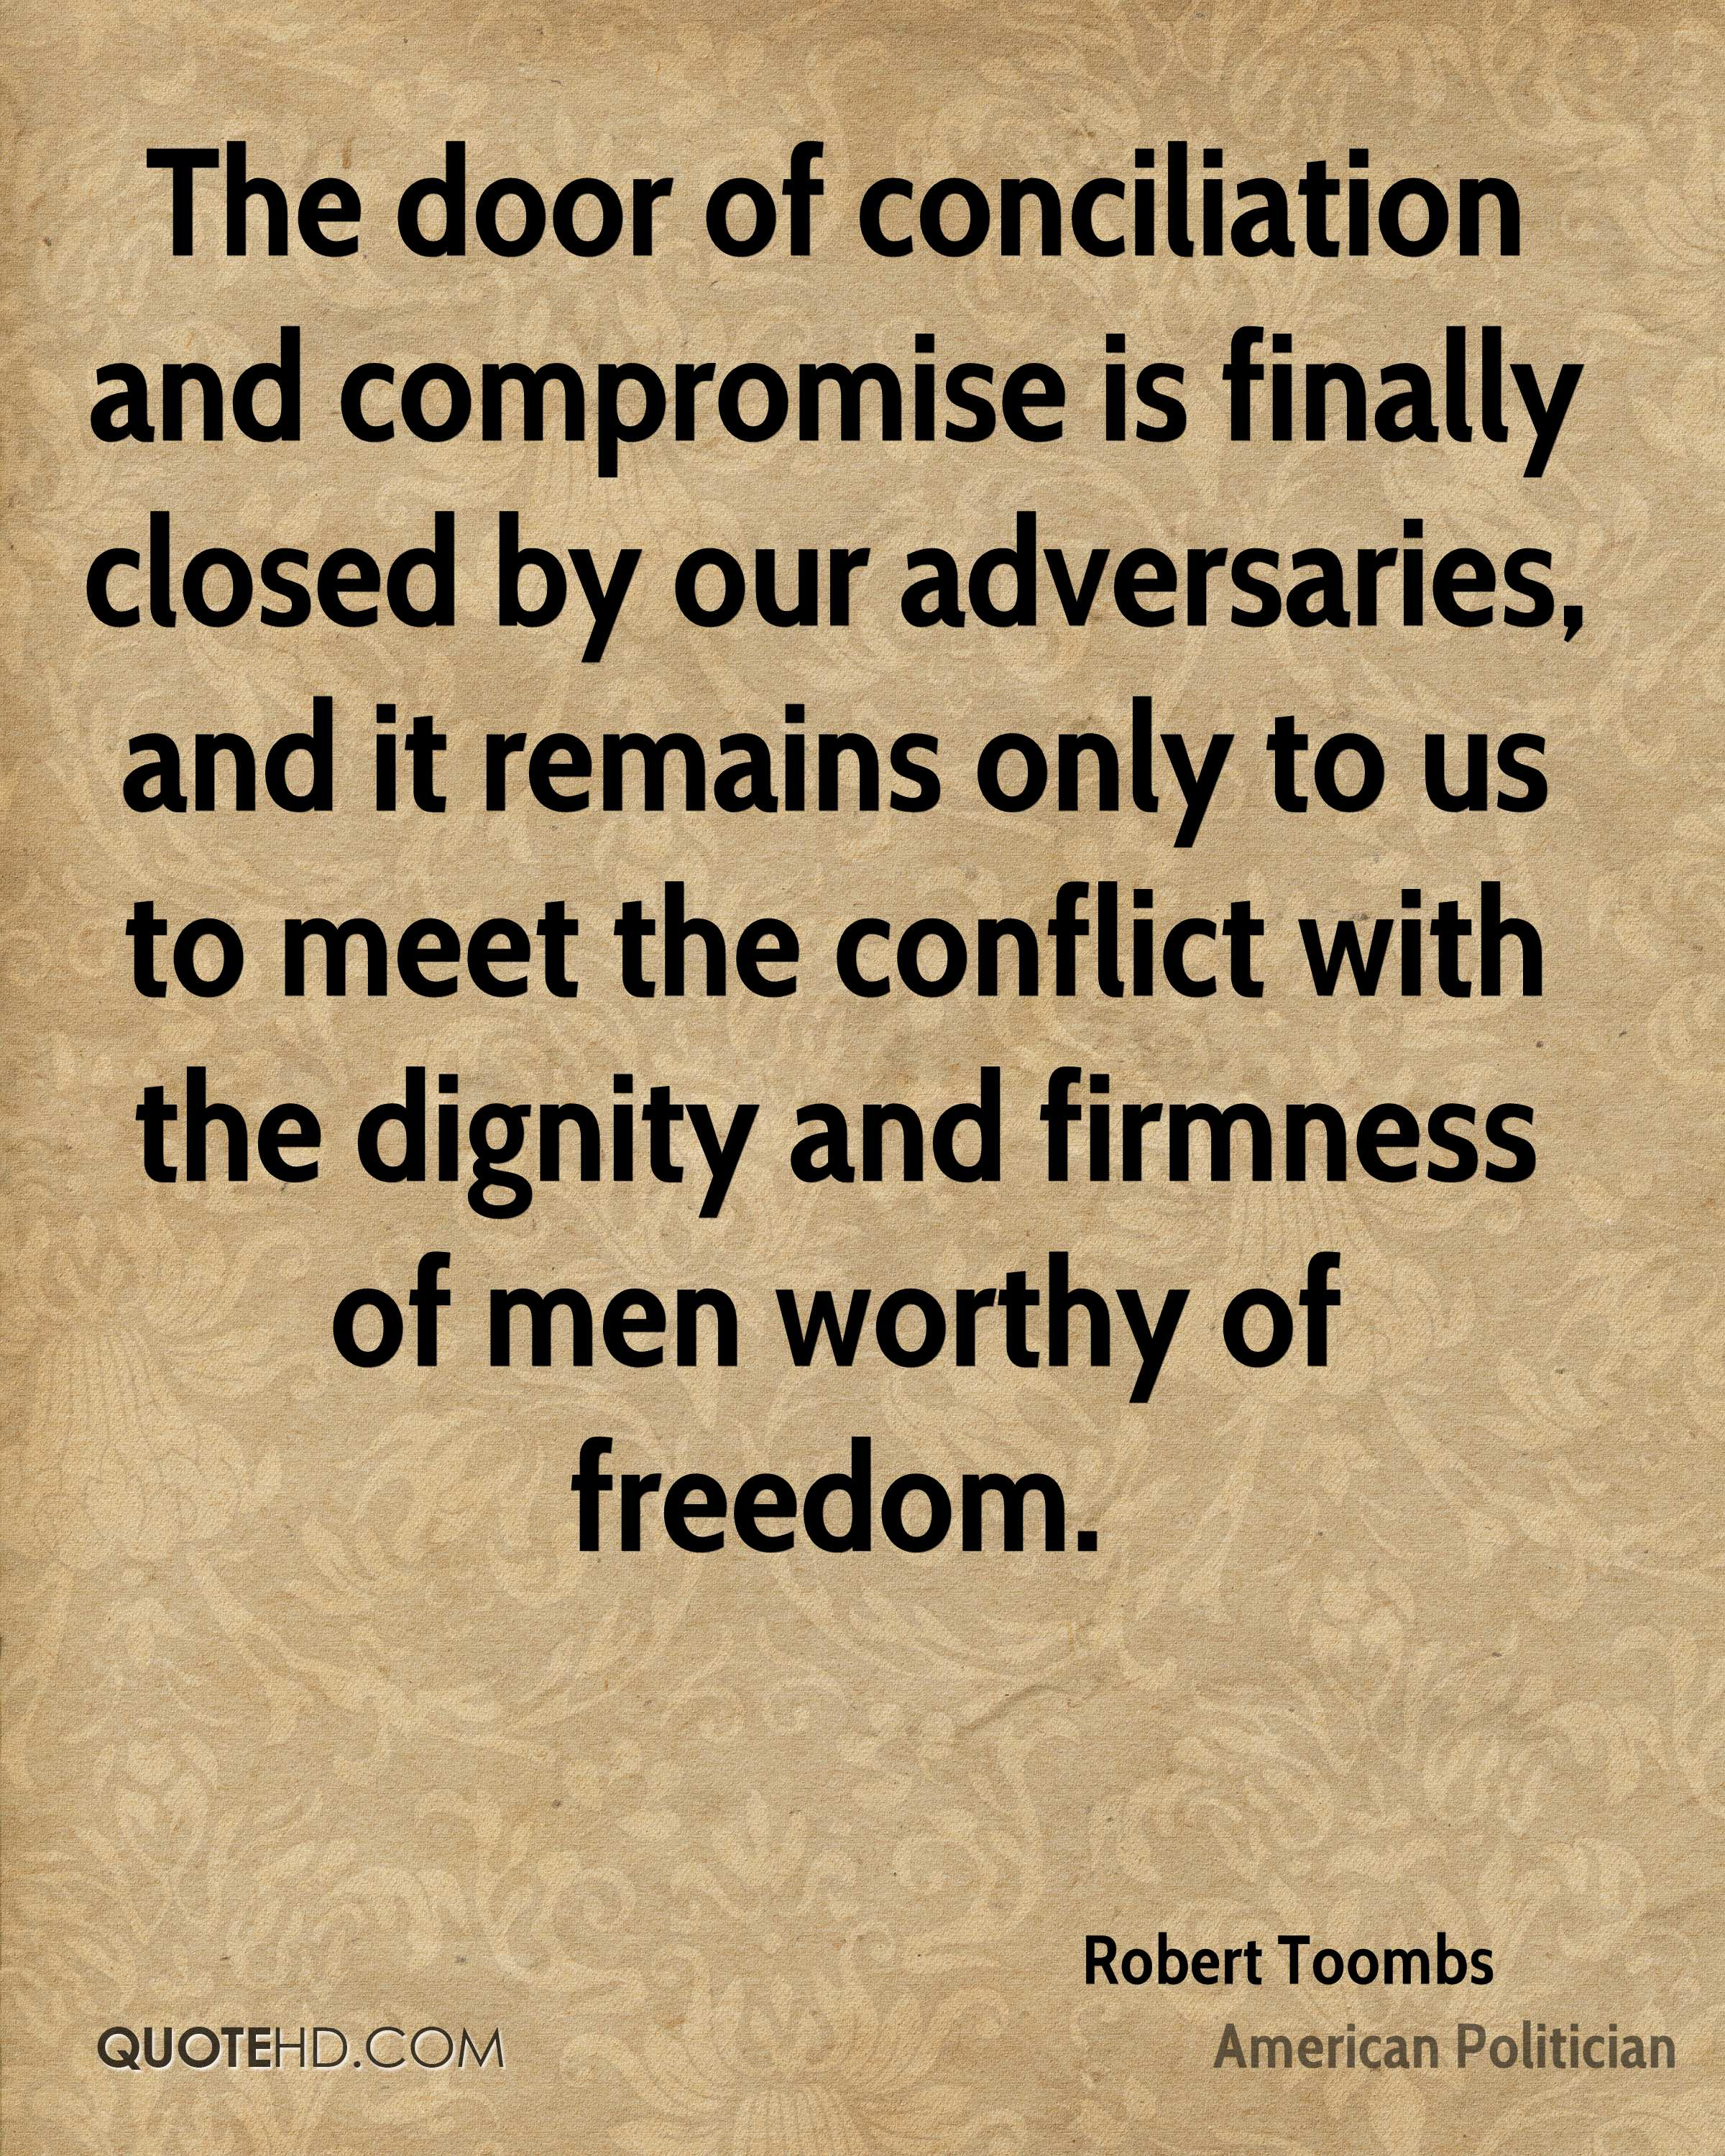 The door of conciliation and compromise is finally closed by our adversaries, and it remains only to us to meet the conflict with the dignity and firmness of men worthy of freedom.